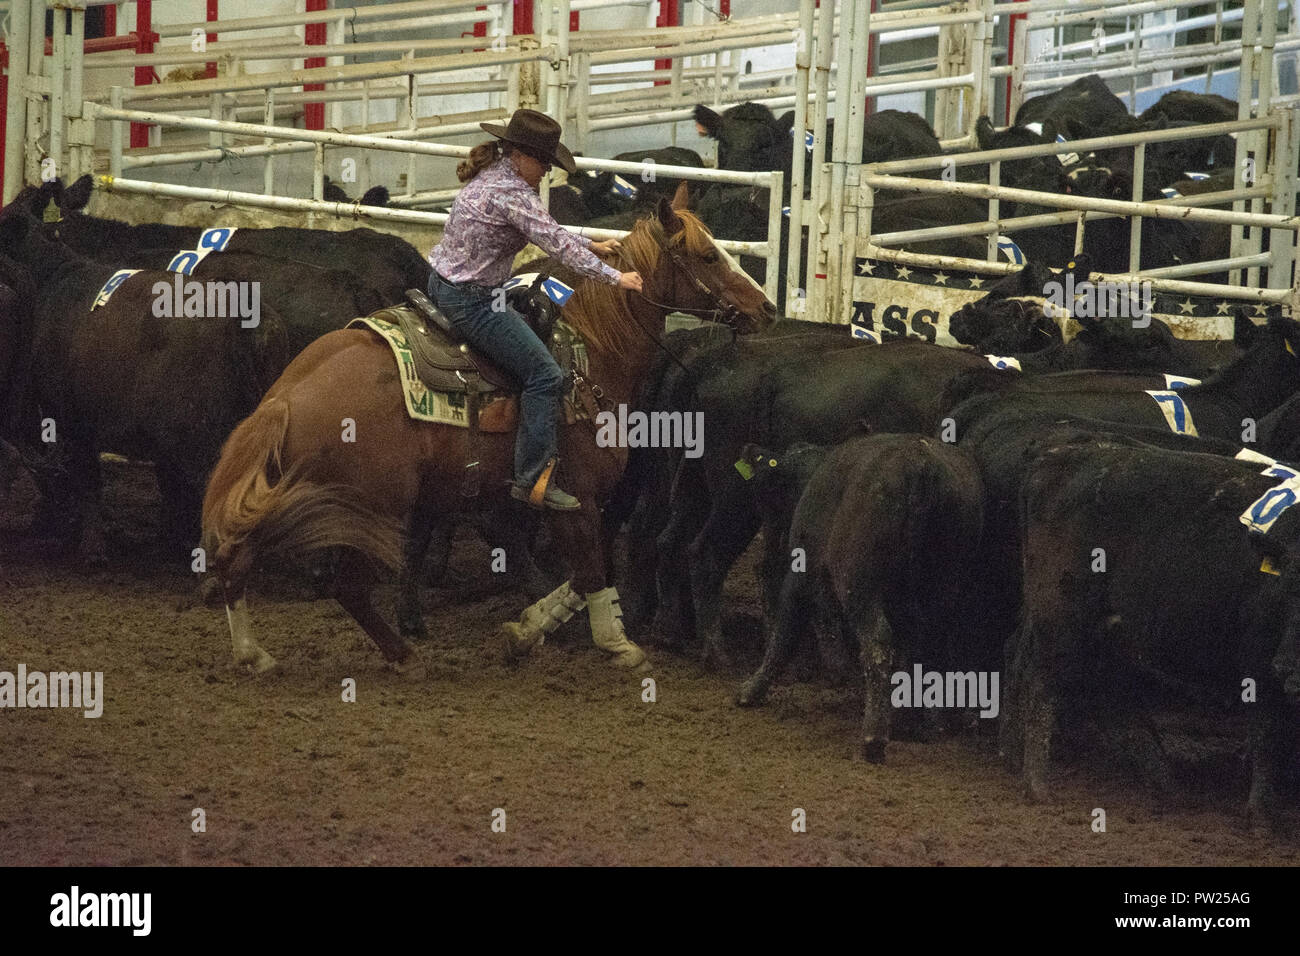 Canadian Cowgirl Stock Photos Amp Canadian Cowgirl Stock